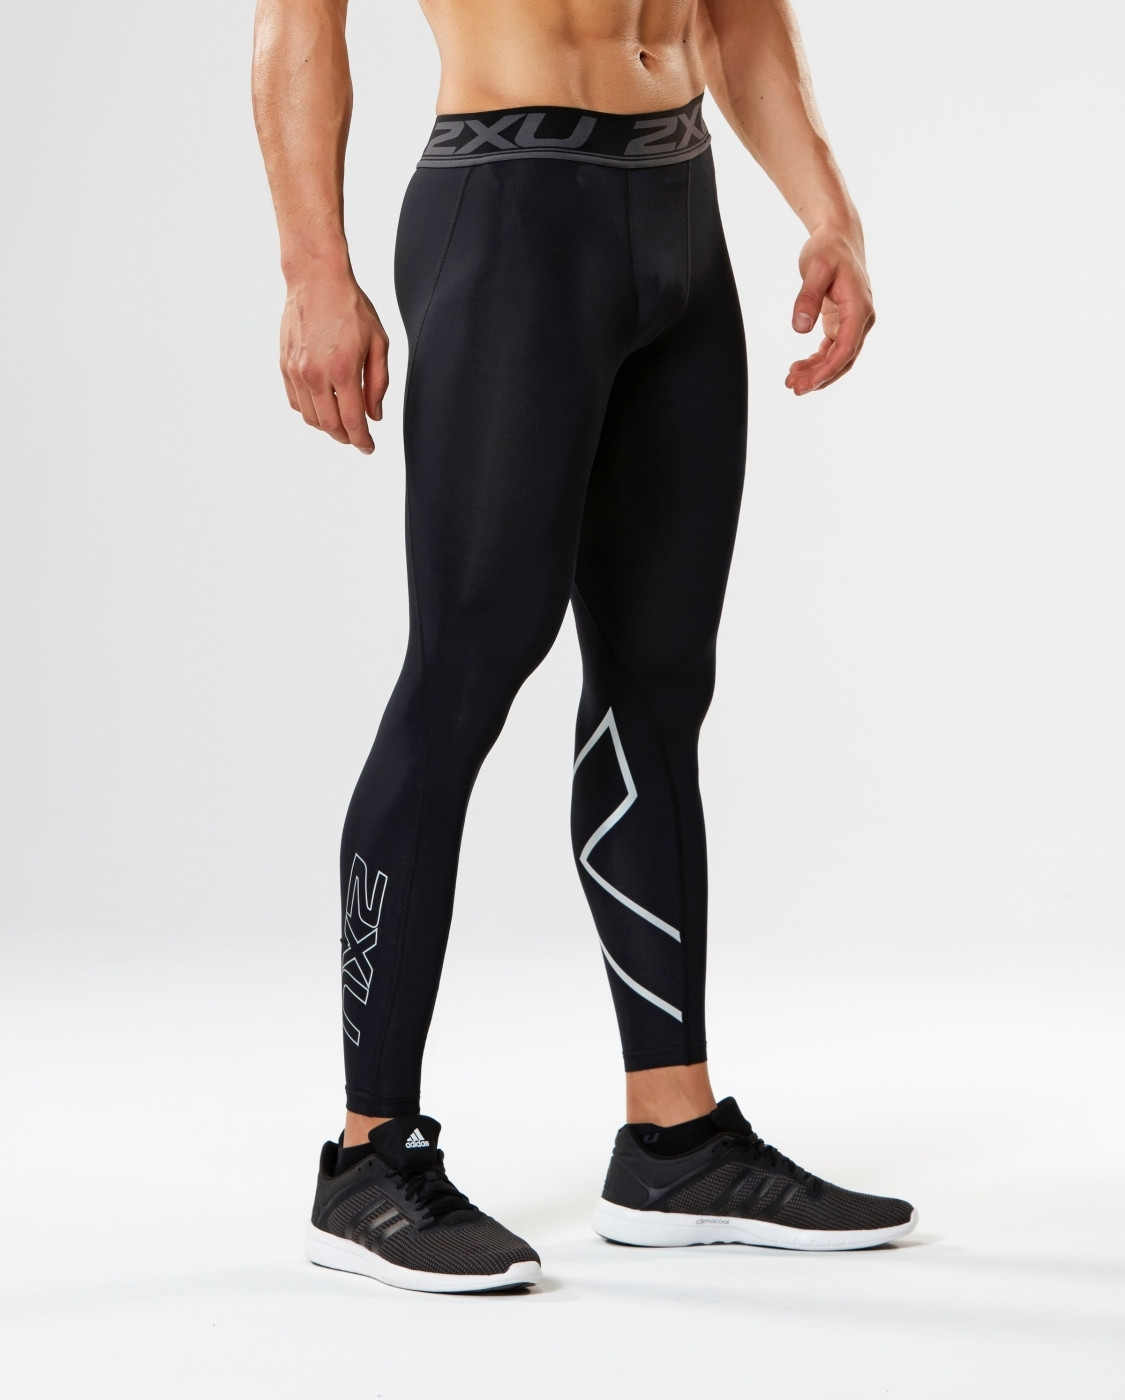 Тайтсы компрессионные 2XU Accelerate M - Black / Nero